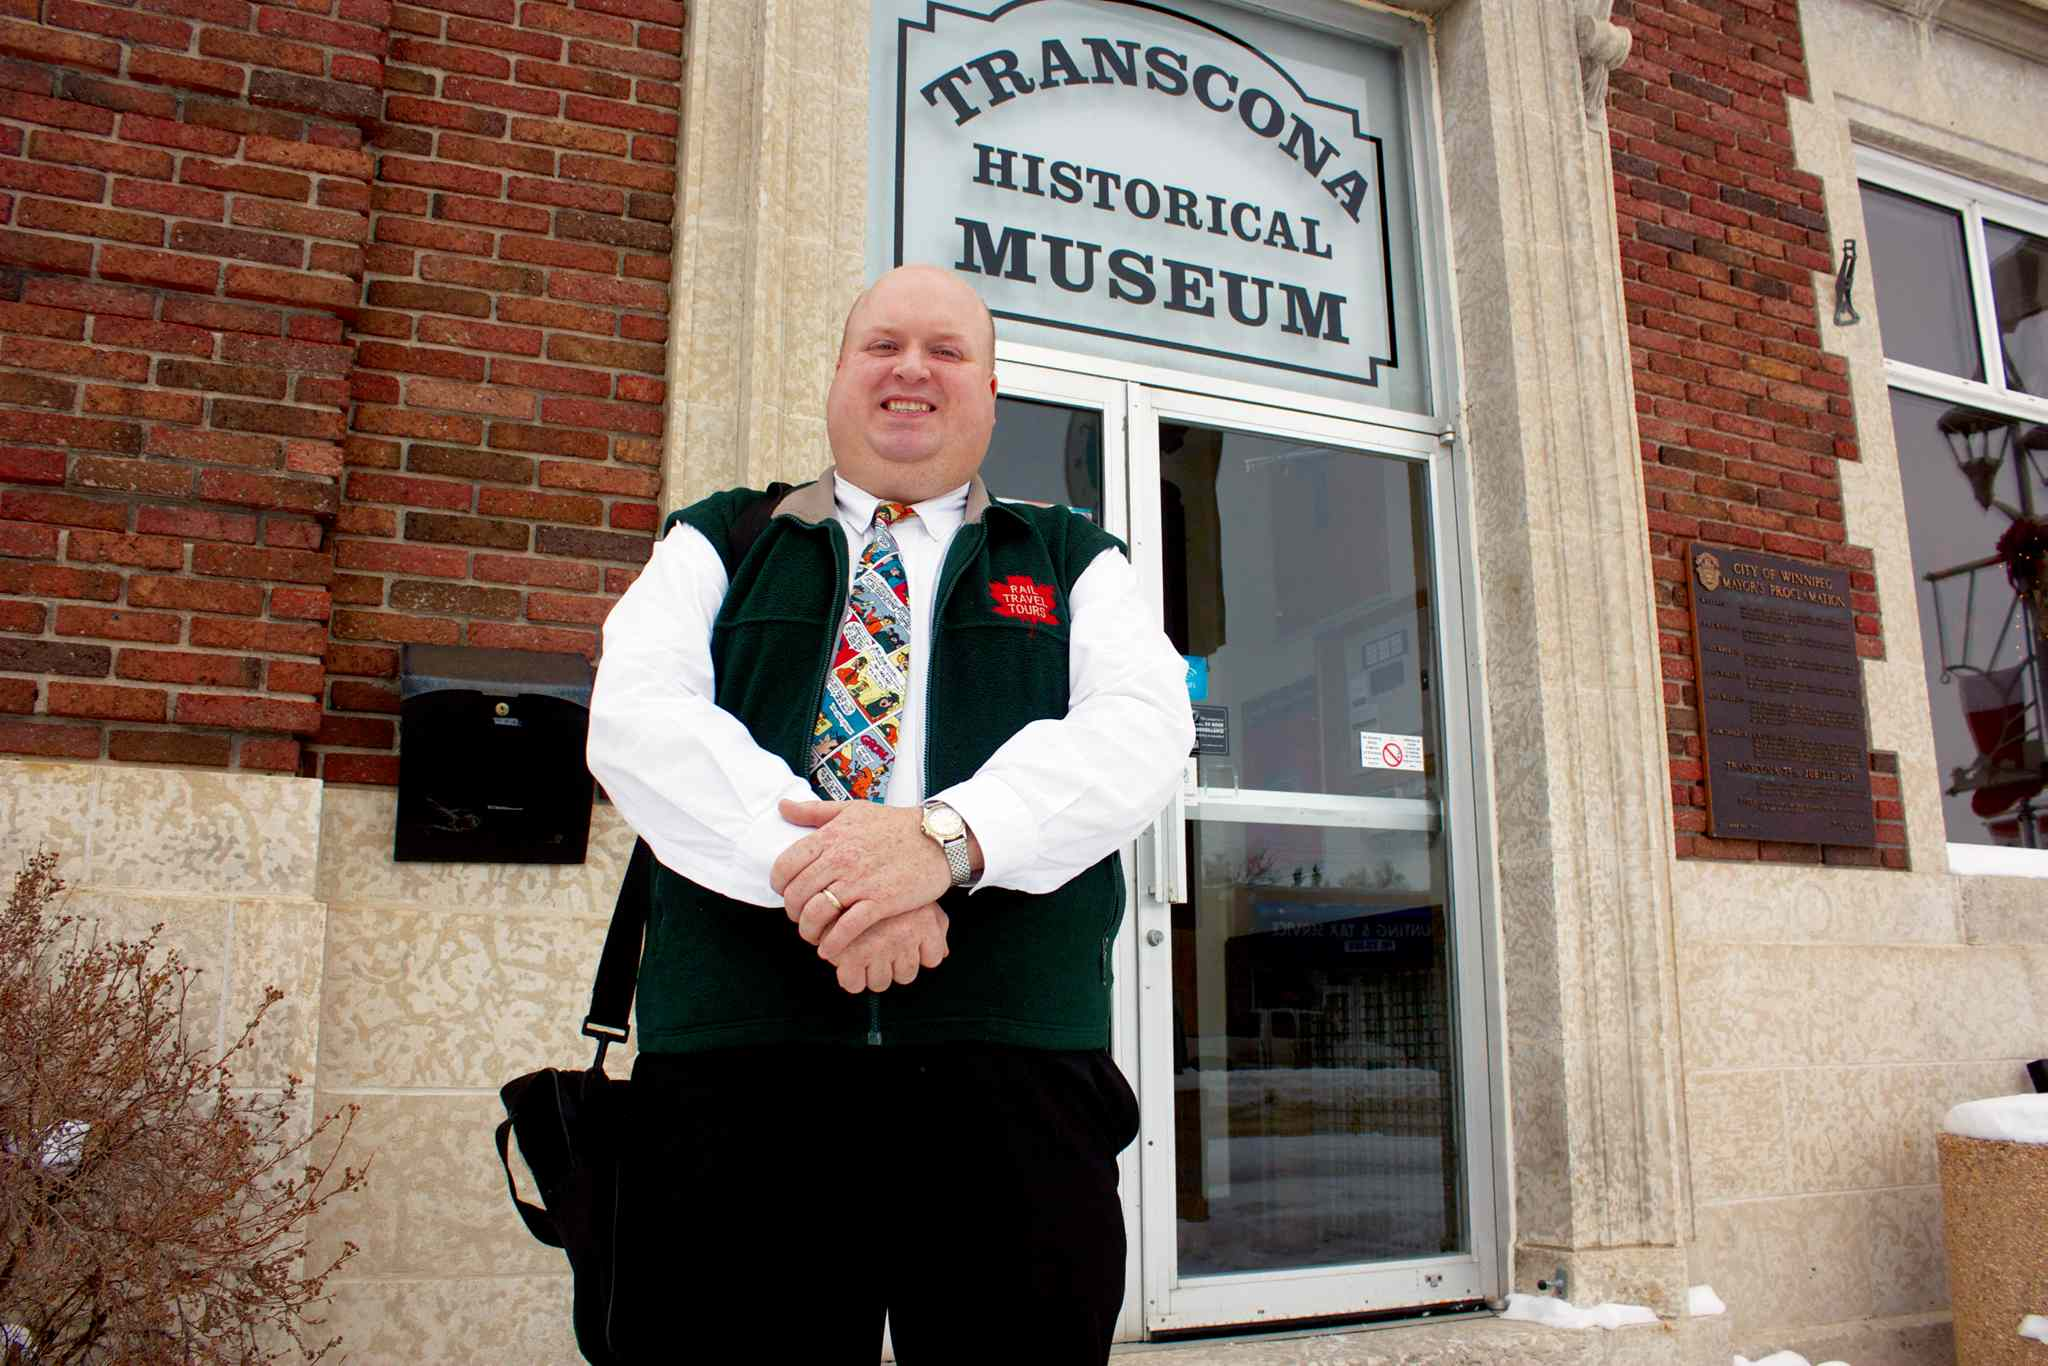 Daryl Adair of Rail Travel Tours is shown outside the Transcona Historical Museum.